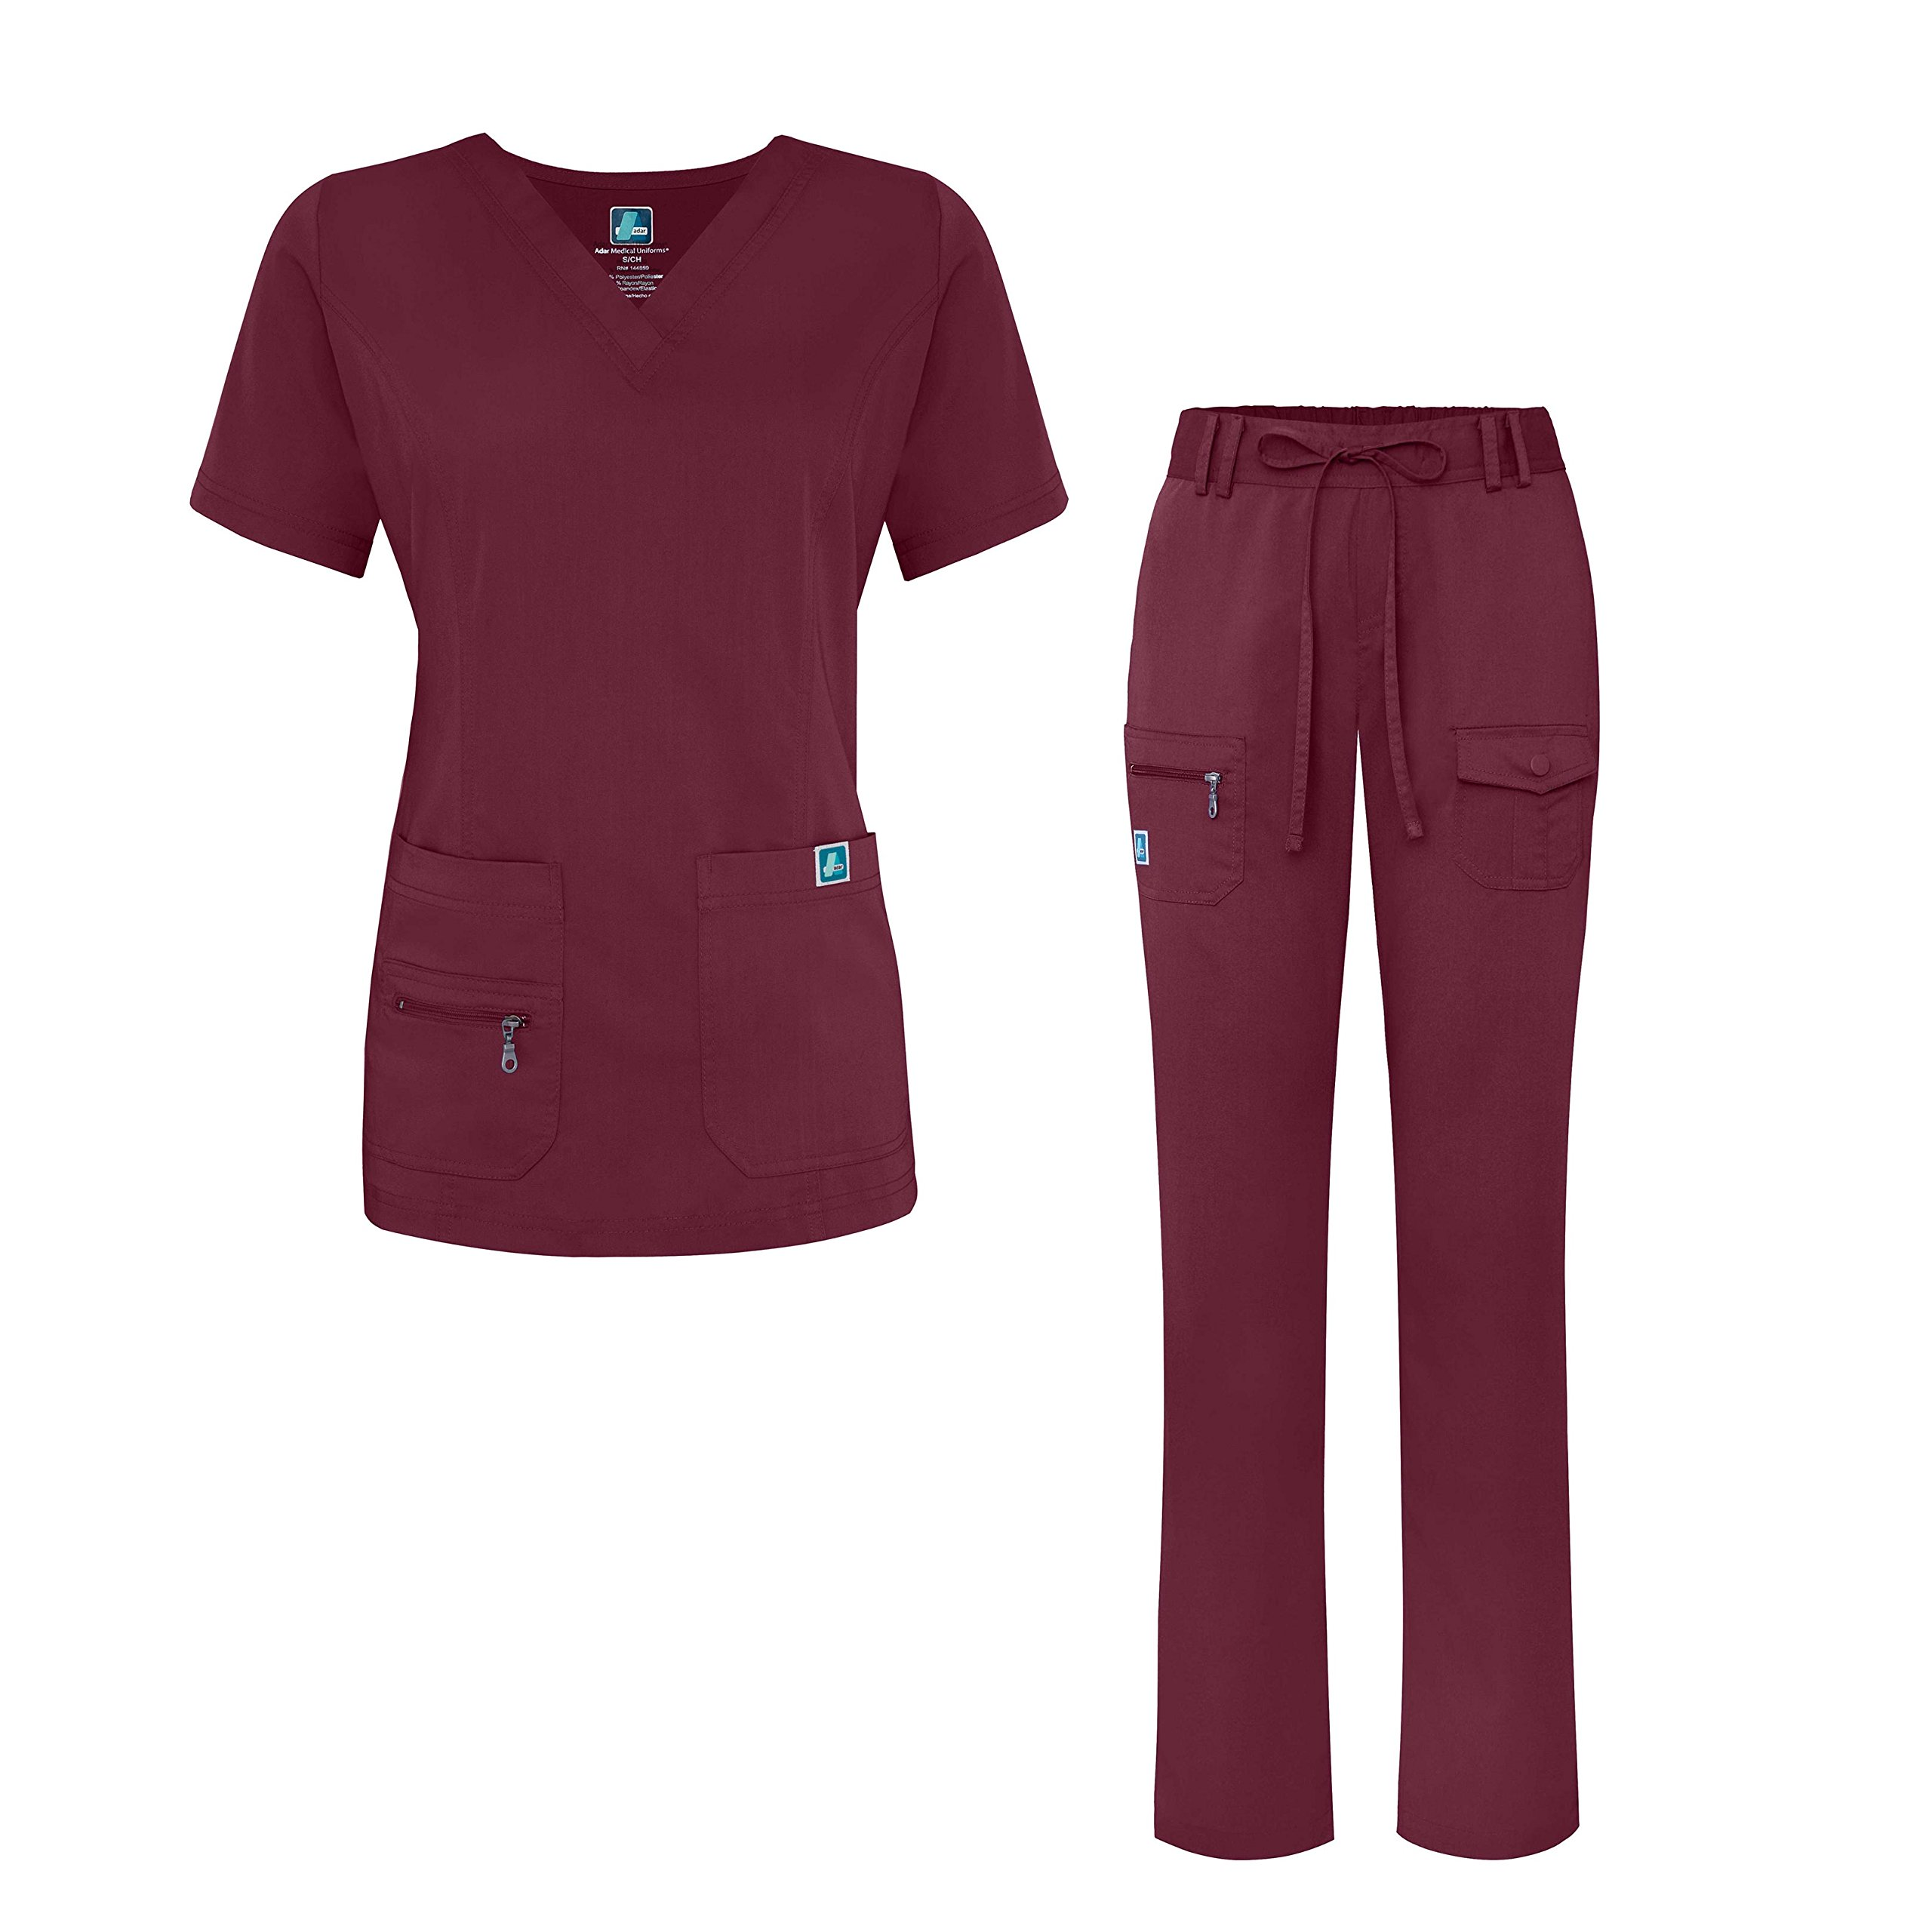 Adar Indulgence Jr. Fit Women's Scrub Set - Enhanced V-Neck Top/Multi Pocket Pants - 4400 - Wine - M